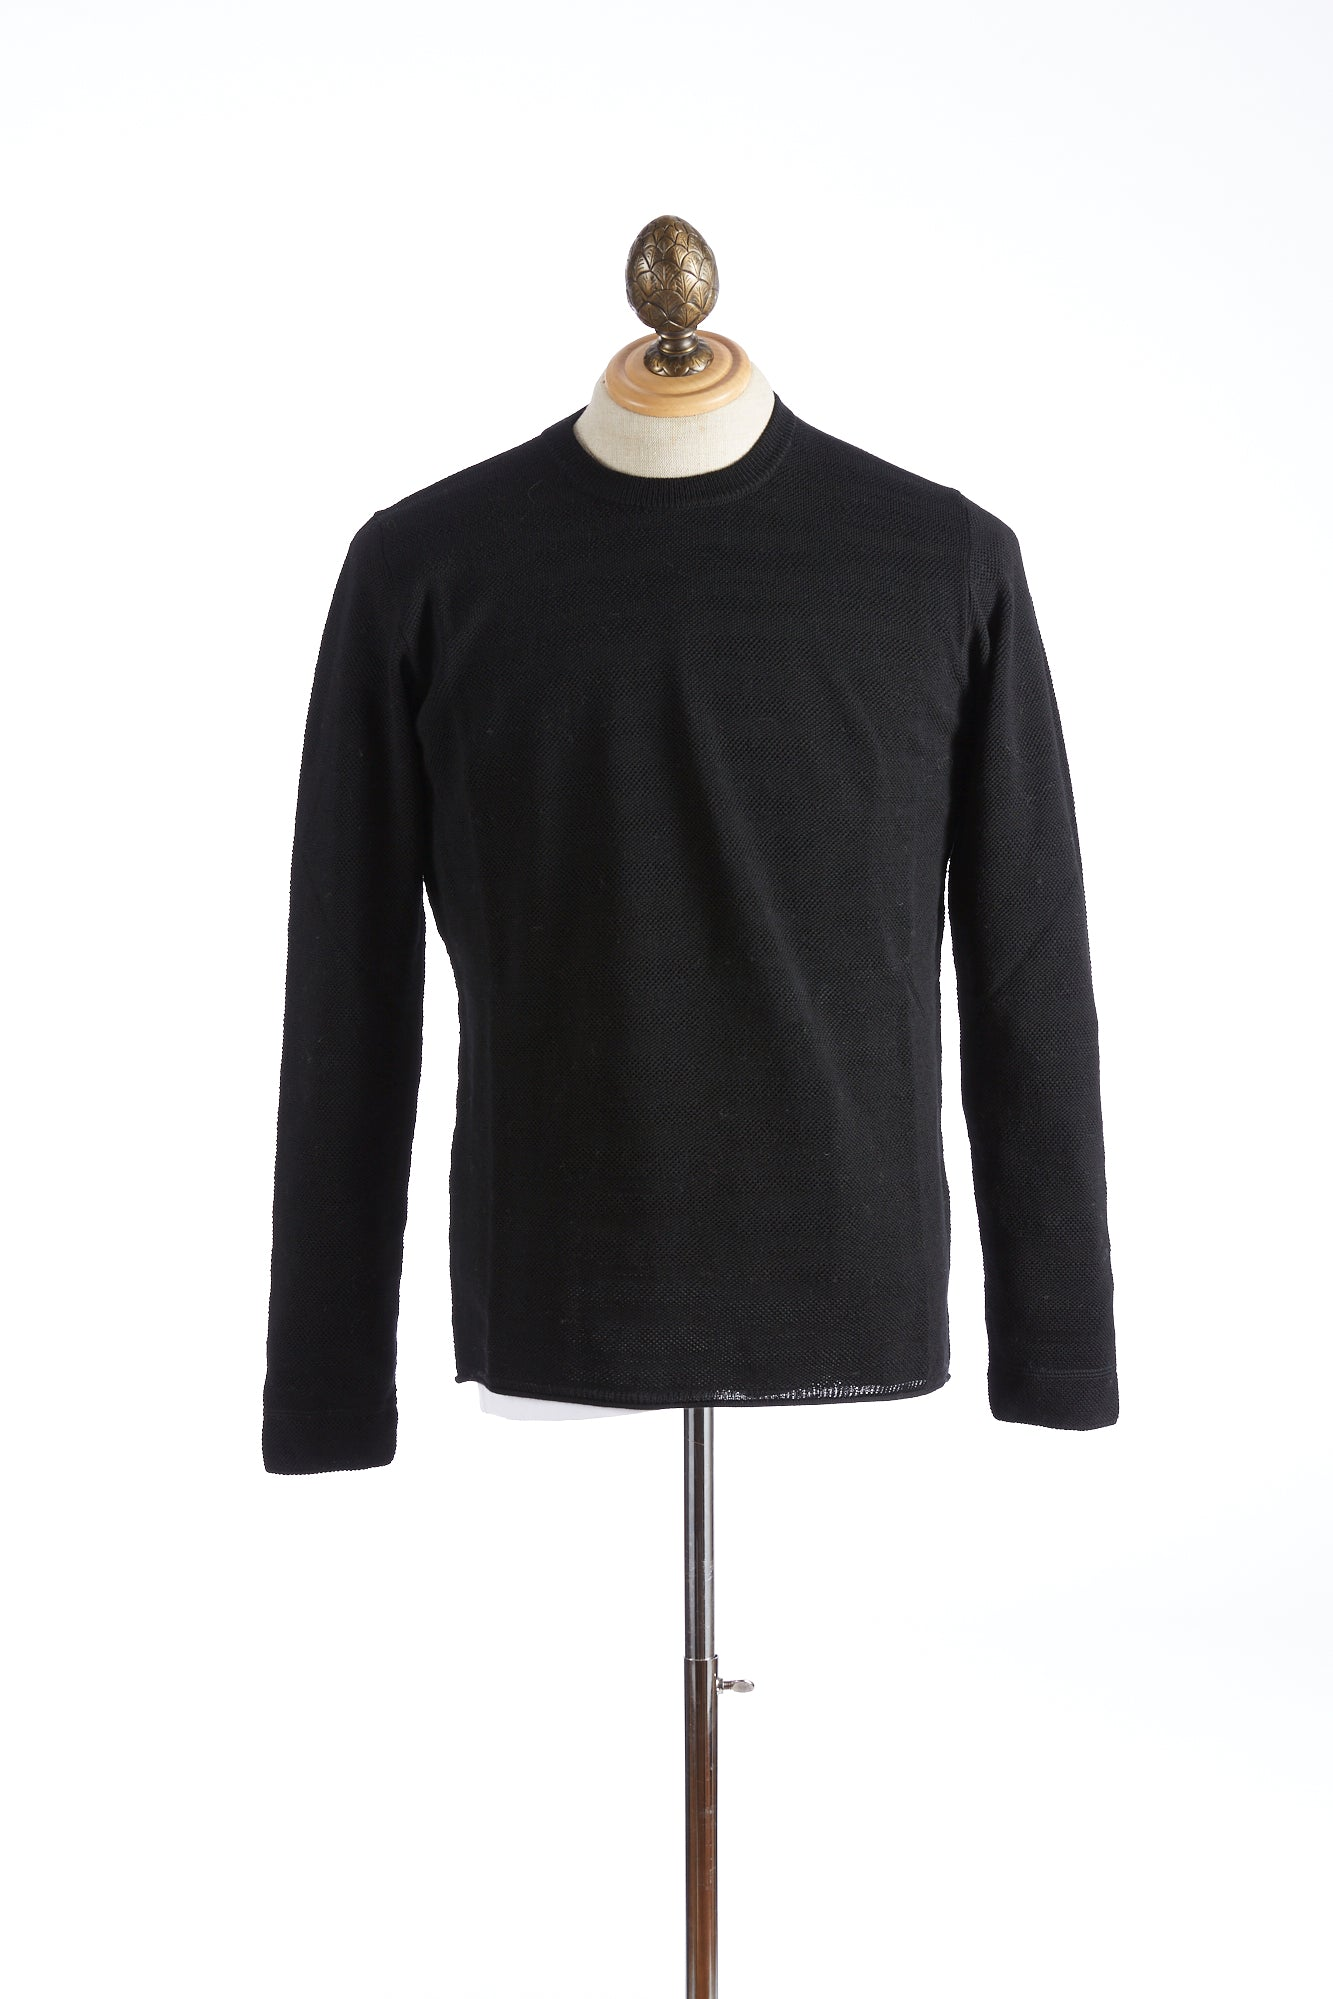 Roberto Collina Black Textured Stripe Sweater